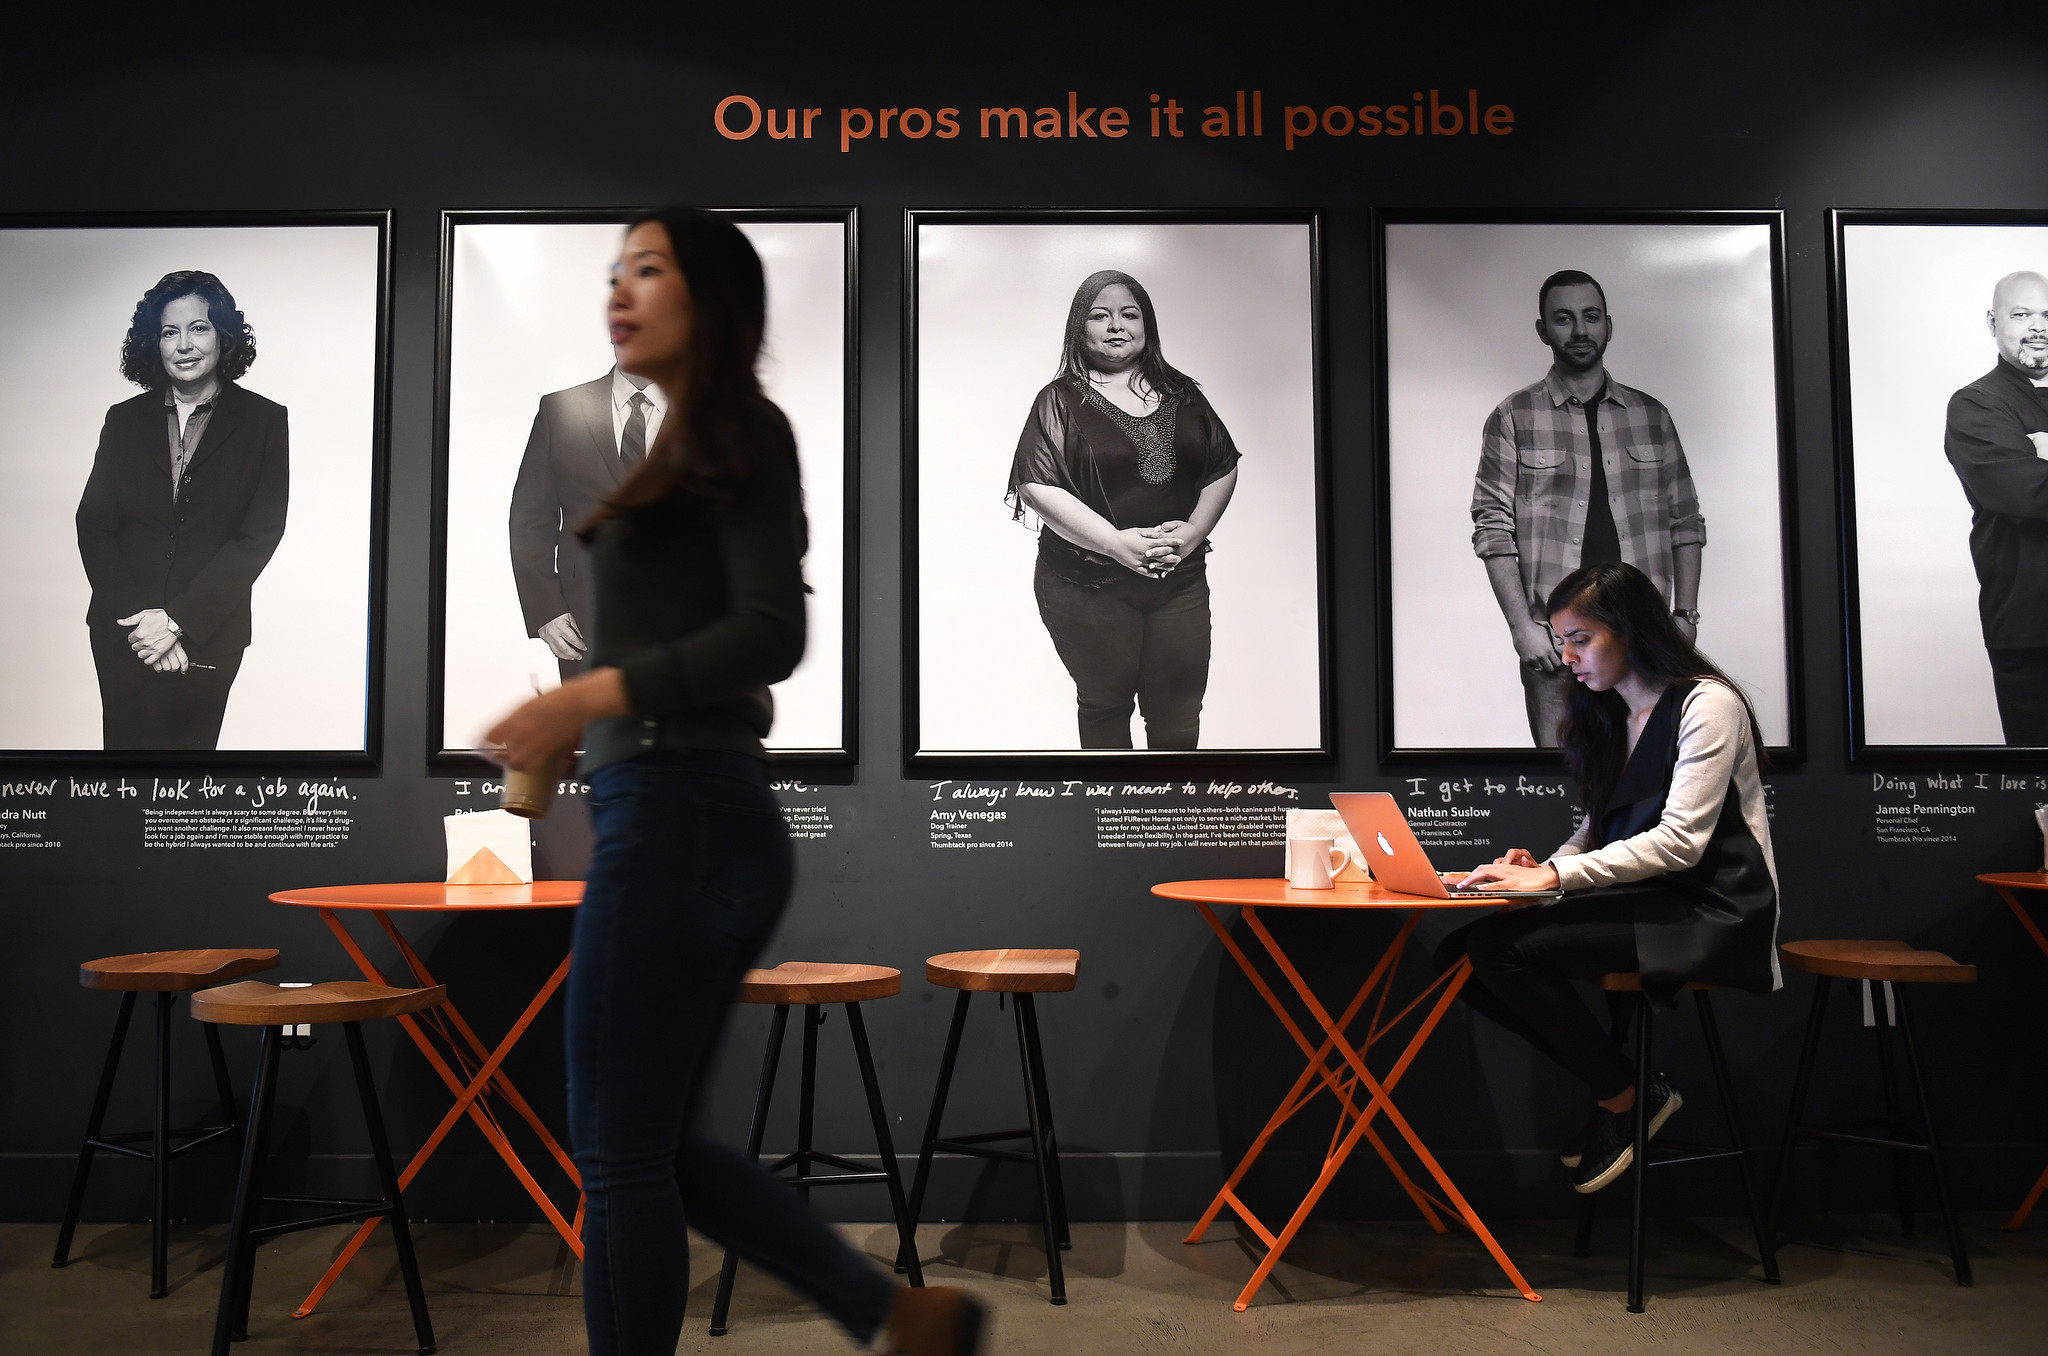 Thumbtack's offices in San Francisco employ politicos who worked for both President Bush and Obama.